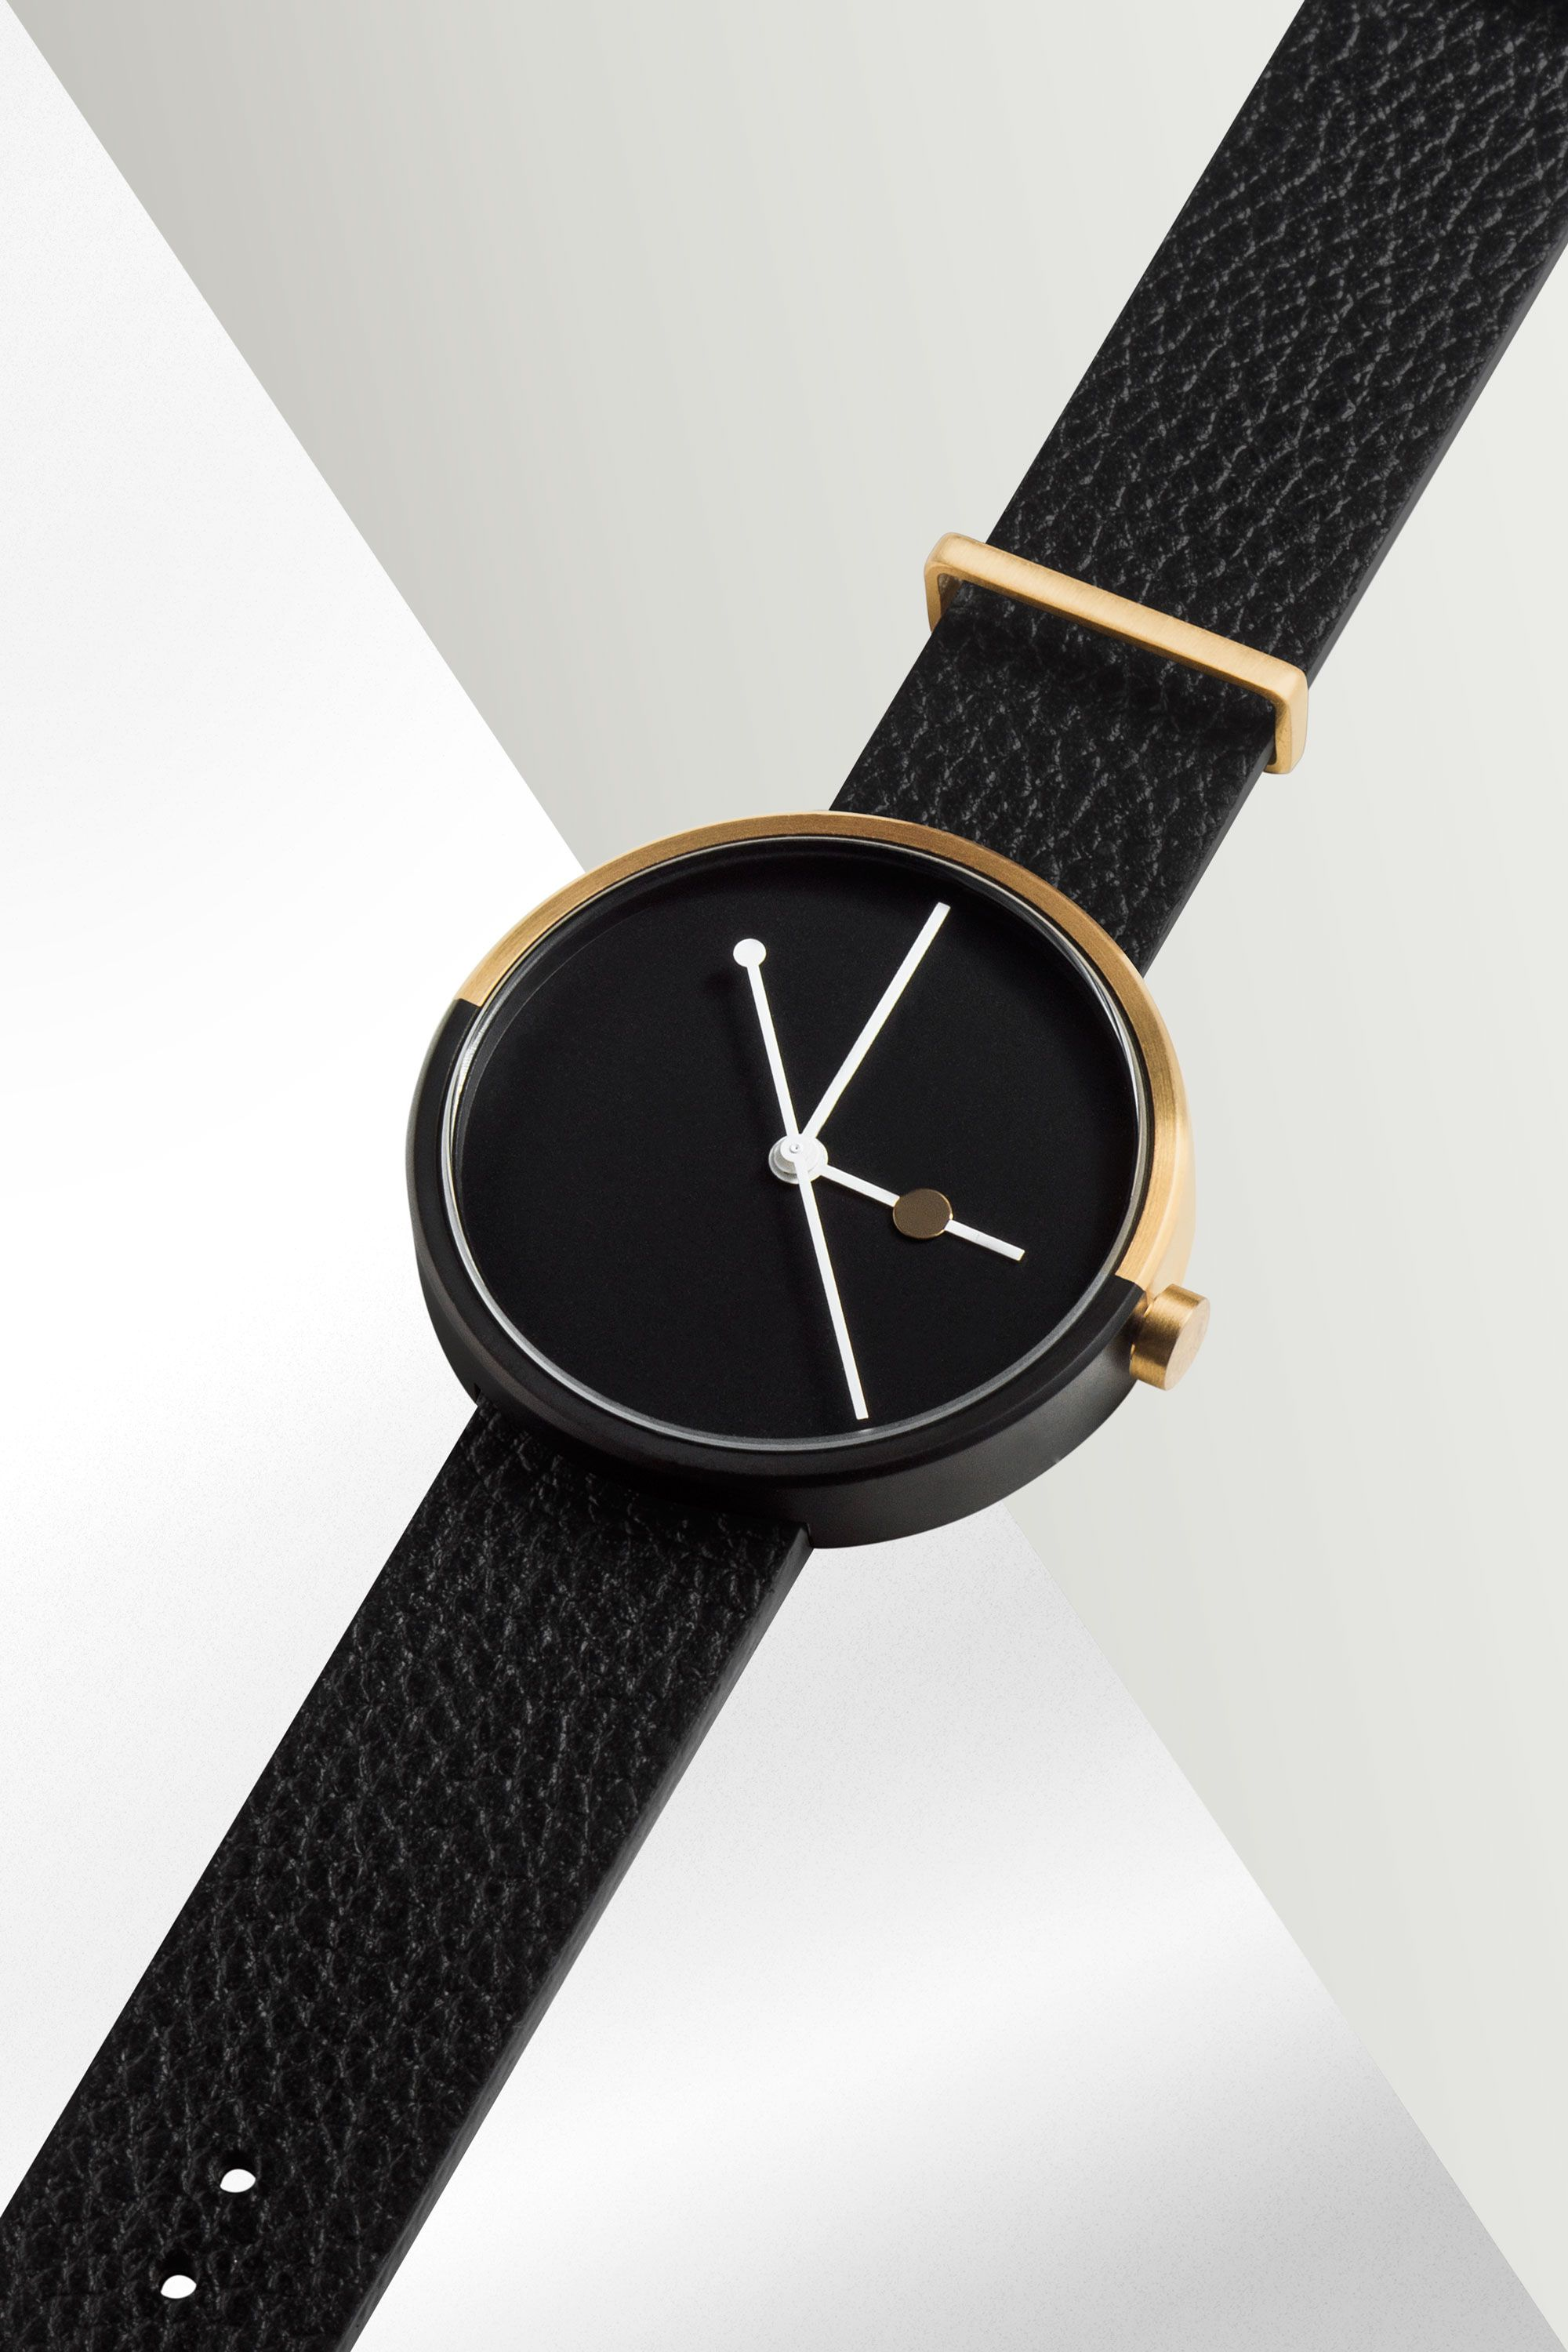 Eclipse — Minimalissimo AÃRK Collective's timepiece range